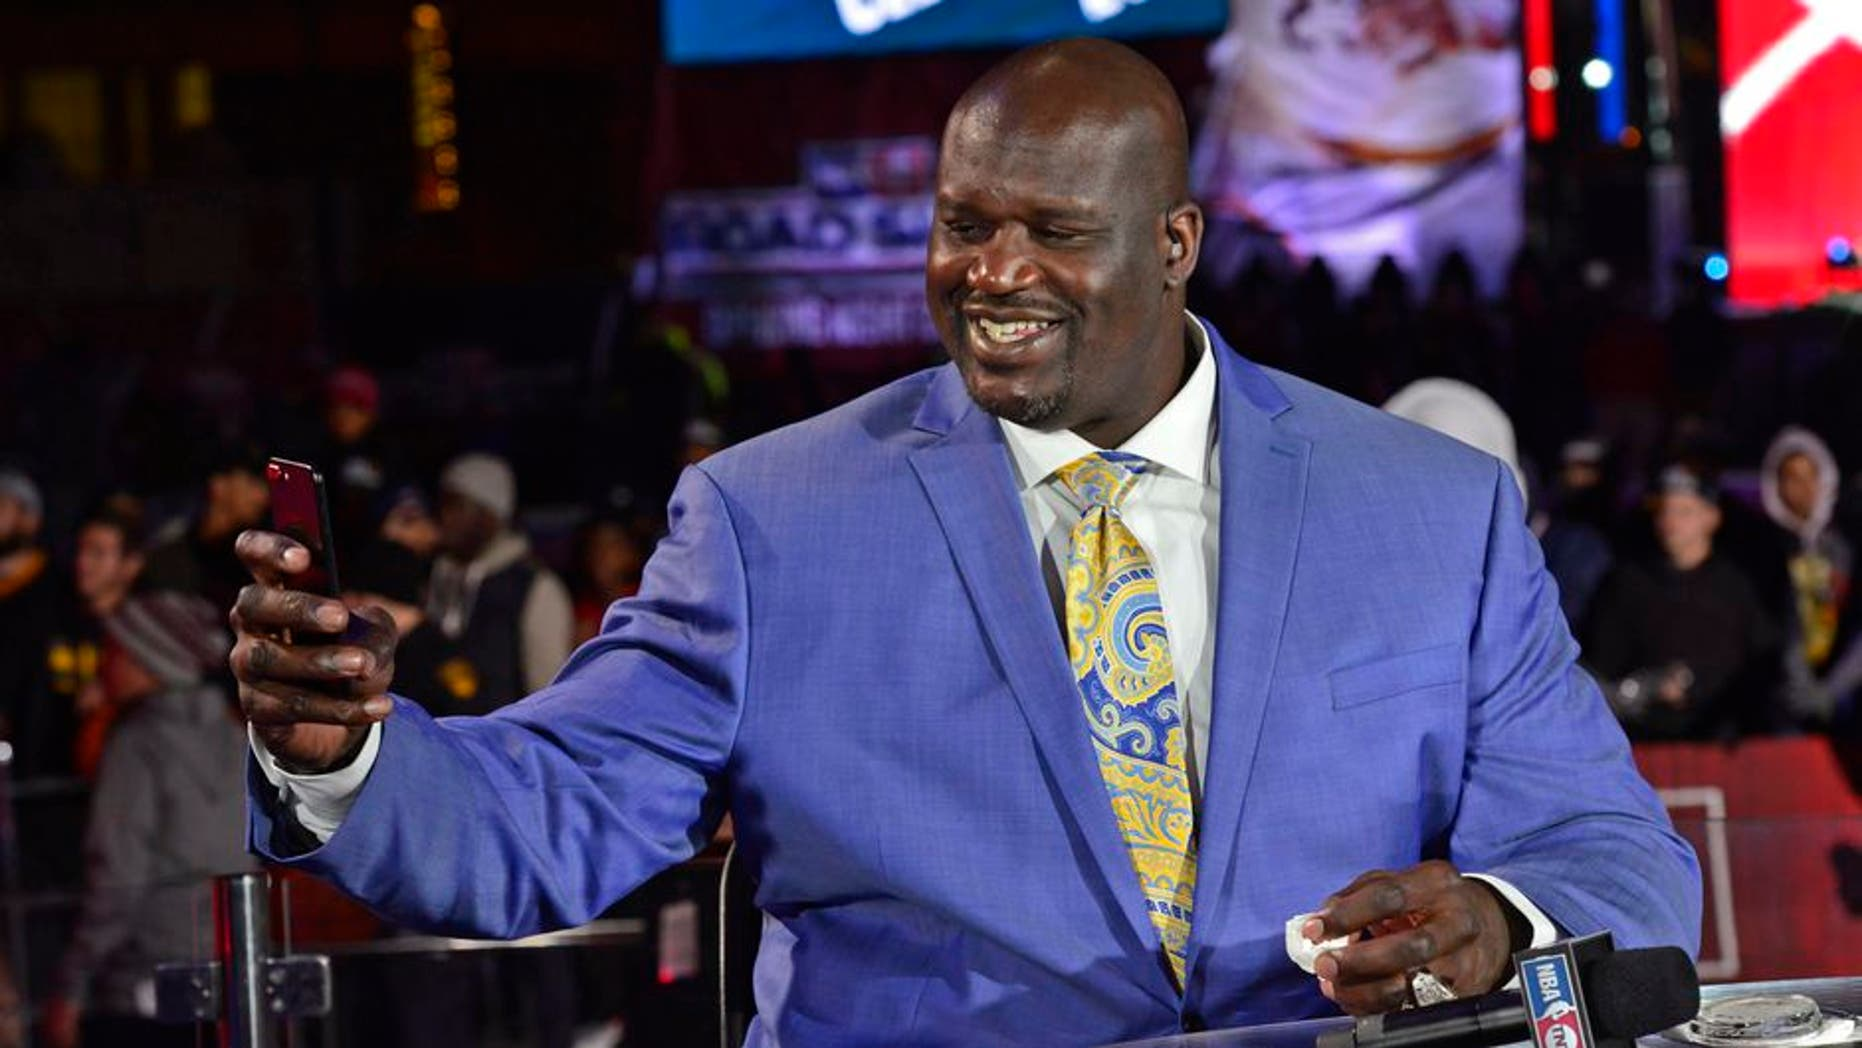 CLEVELAND, OH - OCTOBER 25: A close up shot of NBA TNT Analyst, Shaquille O'Neal taking a 'selfie' on set before the New York Knicks game against the Cleveland Cavaliers on October 25, 2016 at Quicken Loans Arena in Cleveland, Ohio. NOTE TO USER: User expressly acknowledges and agrees that, by downloading and or using this Photograph, user is consenting to the terms and conditions of the Getty Images License Agreement. Mandatory Copyright Notice: Copyright 2016 NBAE (Photo by David Dow/NBAE via Getty Images)